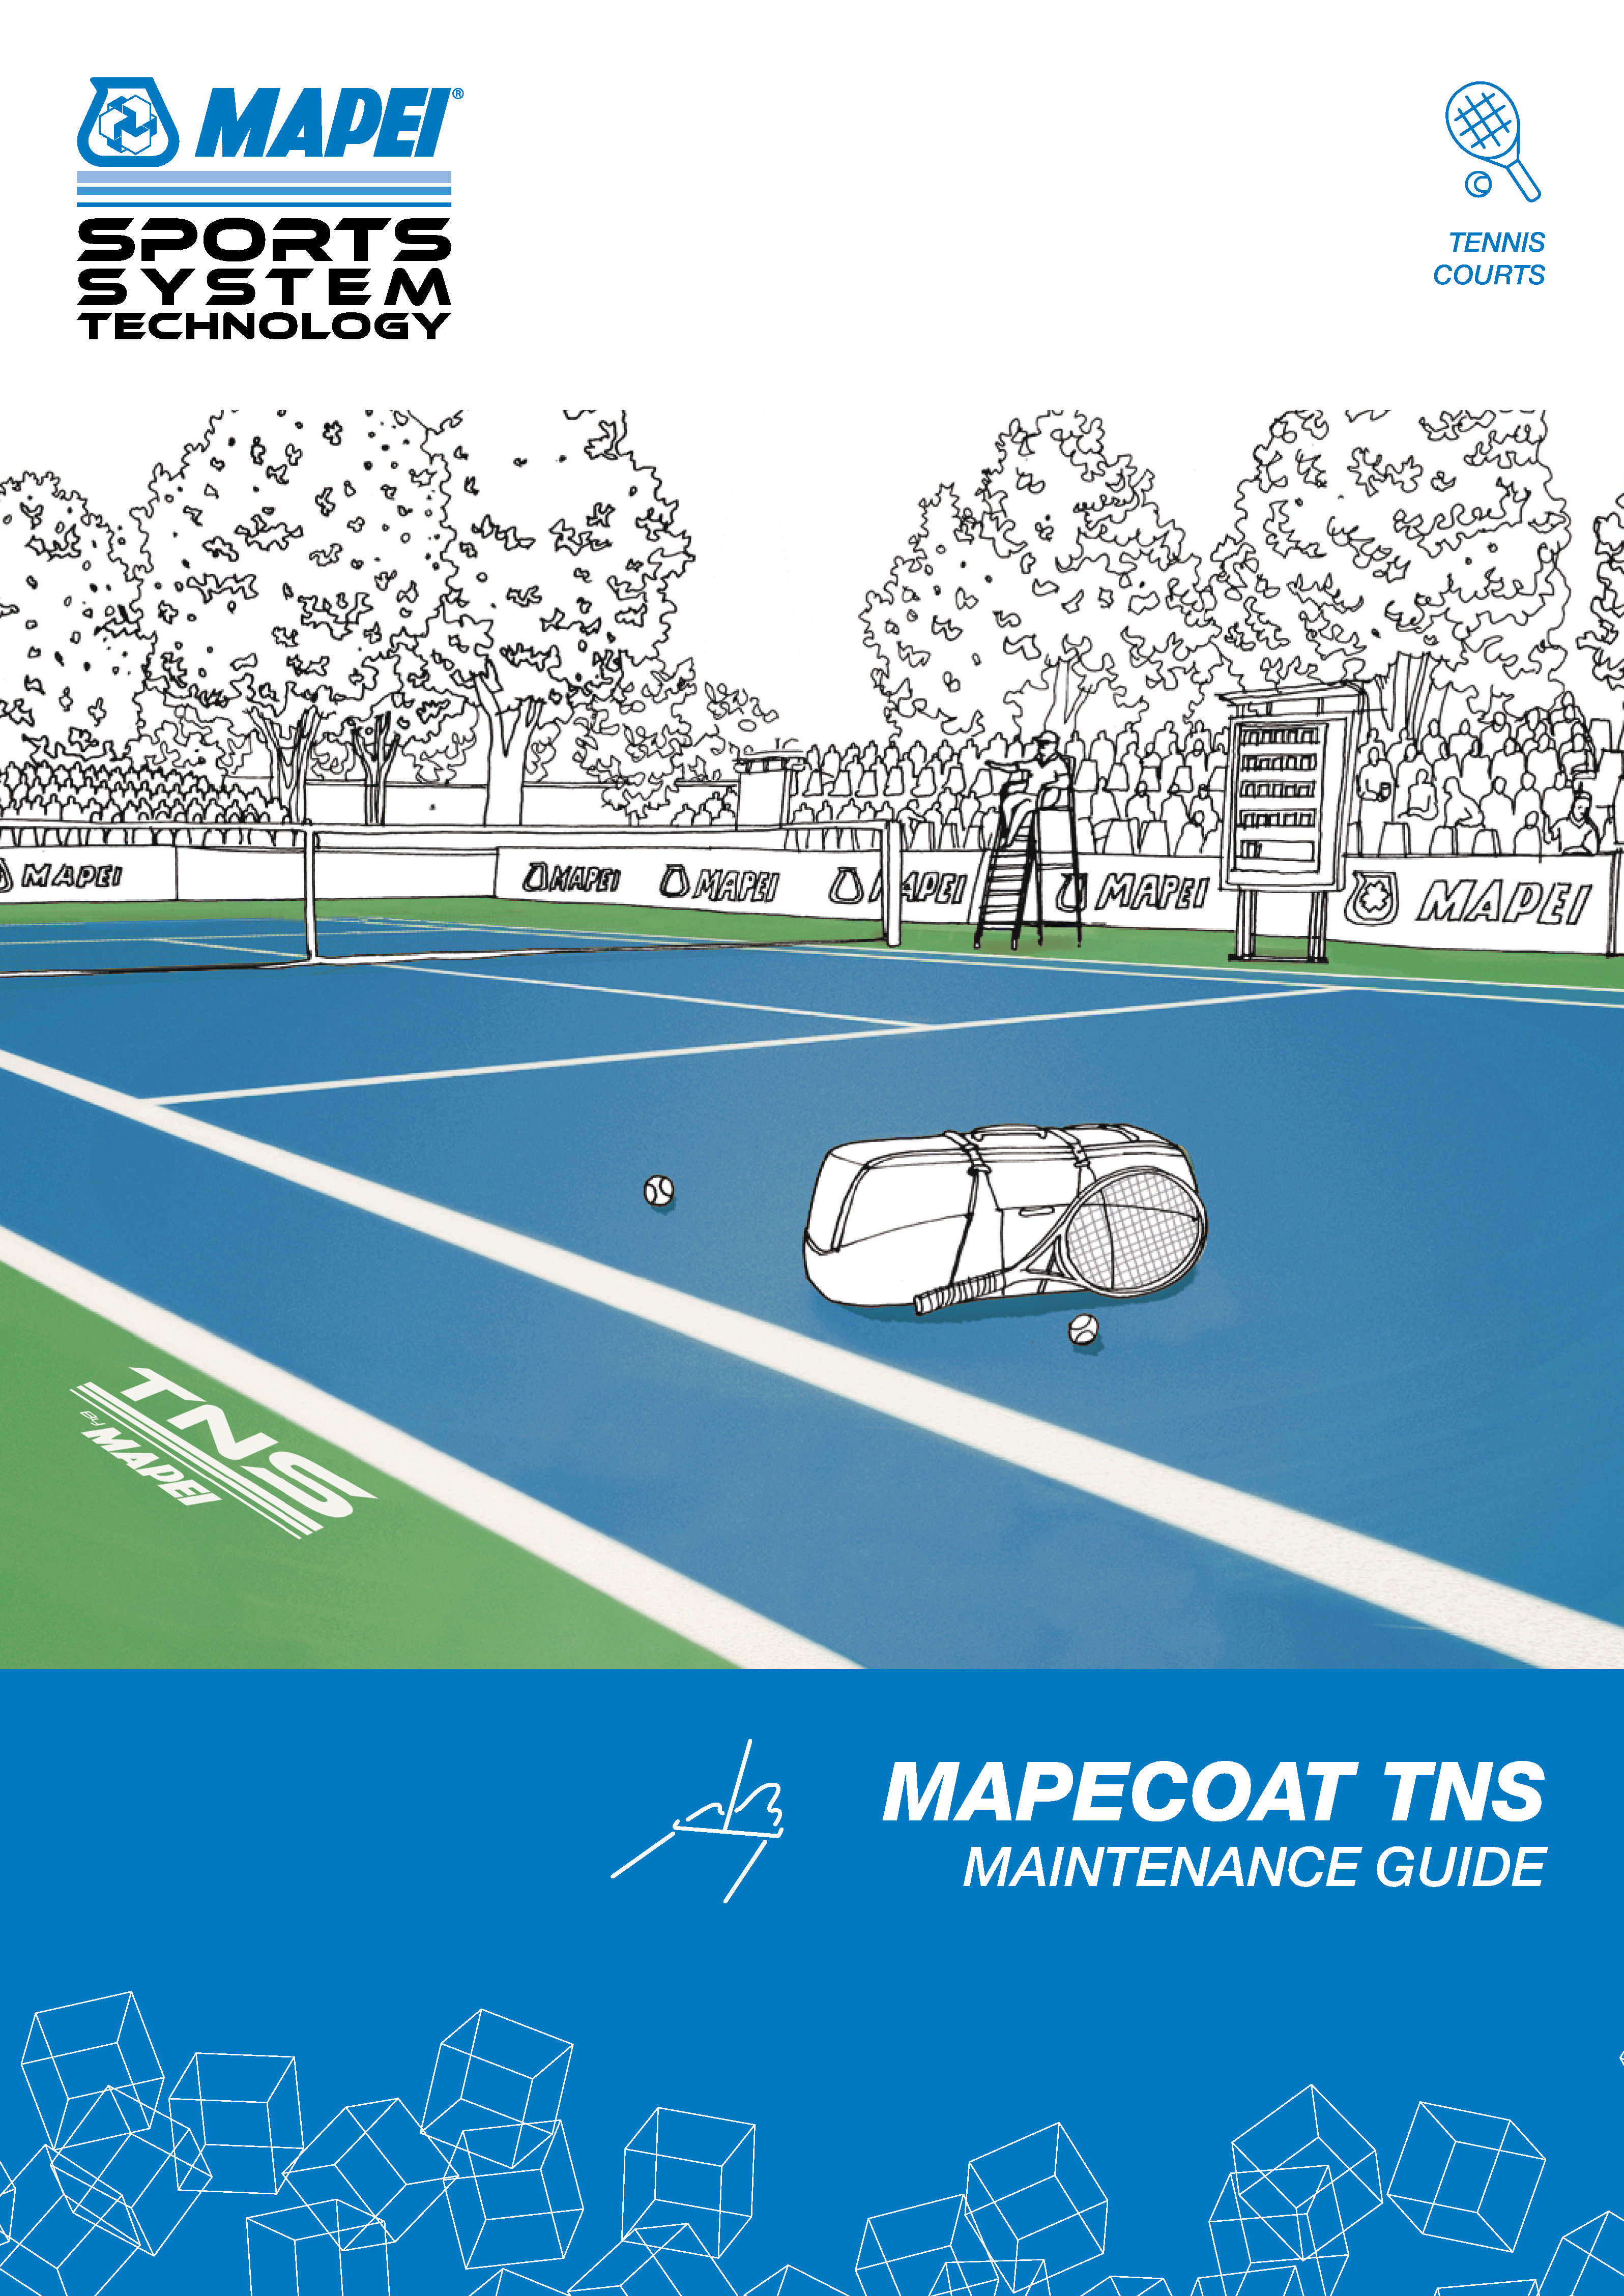 MAPEI Mapecoat TNS Maintenance Guide for Tennis Courts